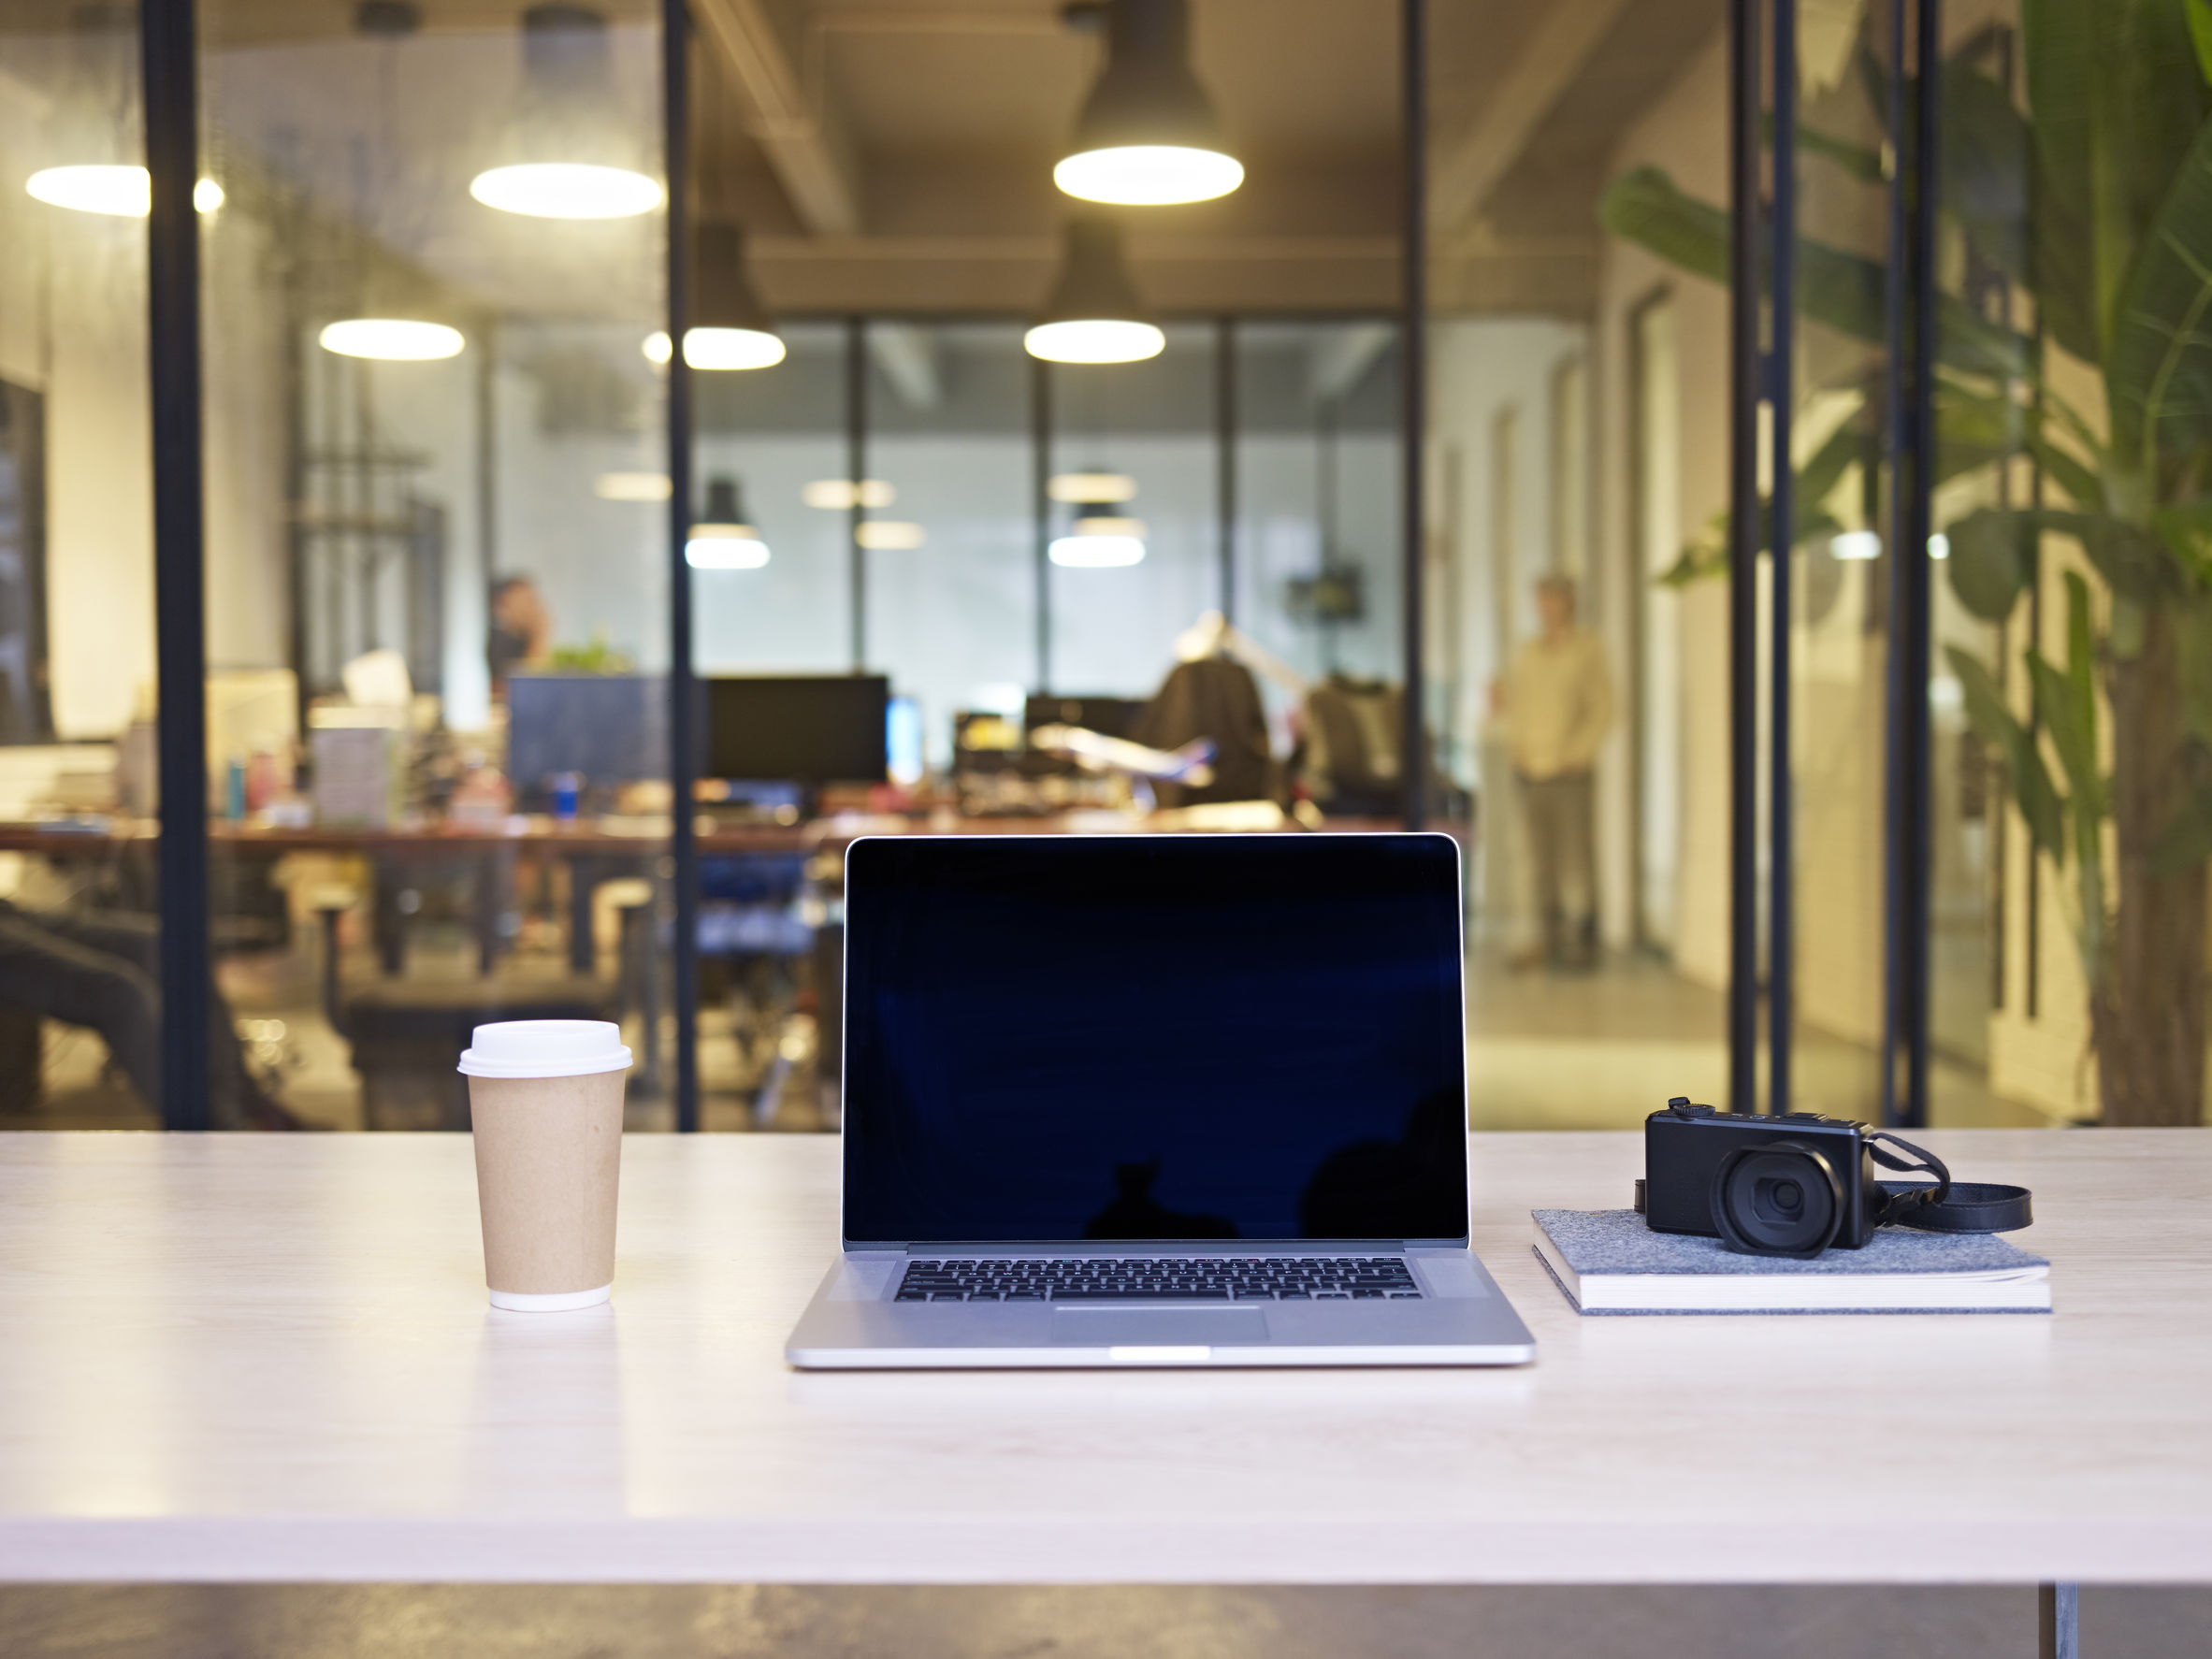 The ideal office has seven distinct zones